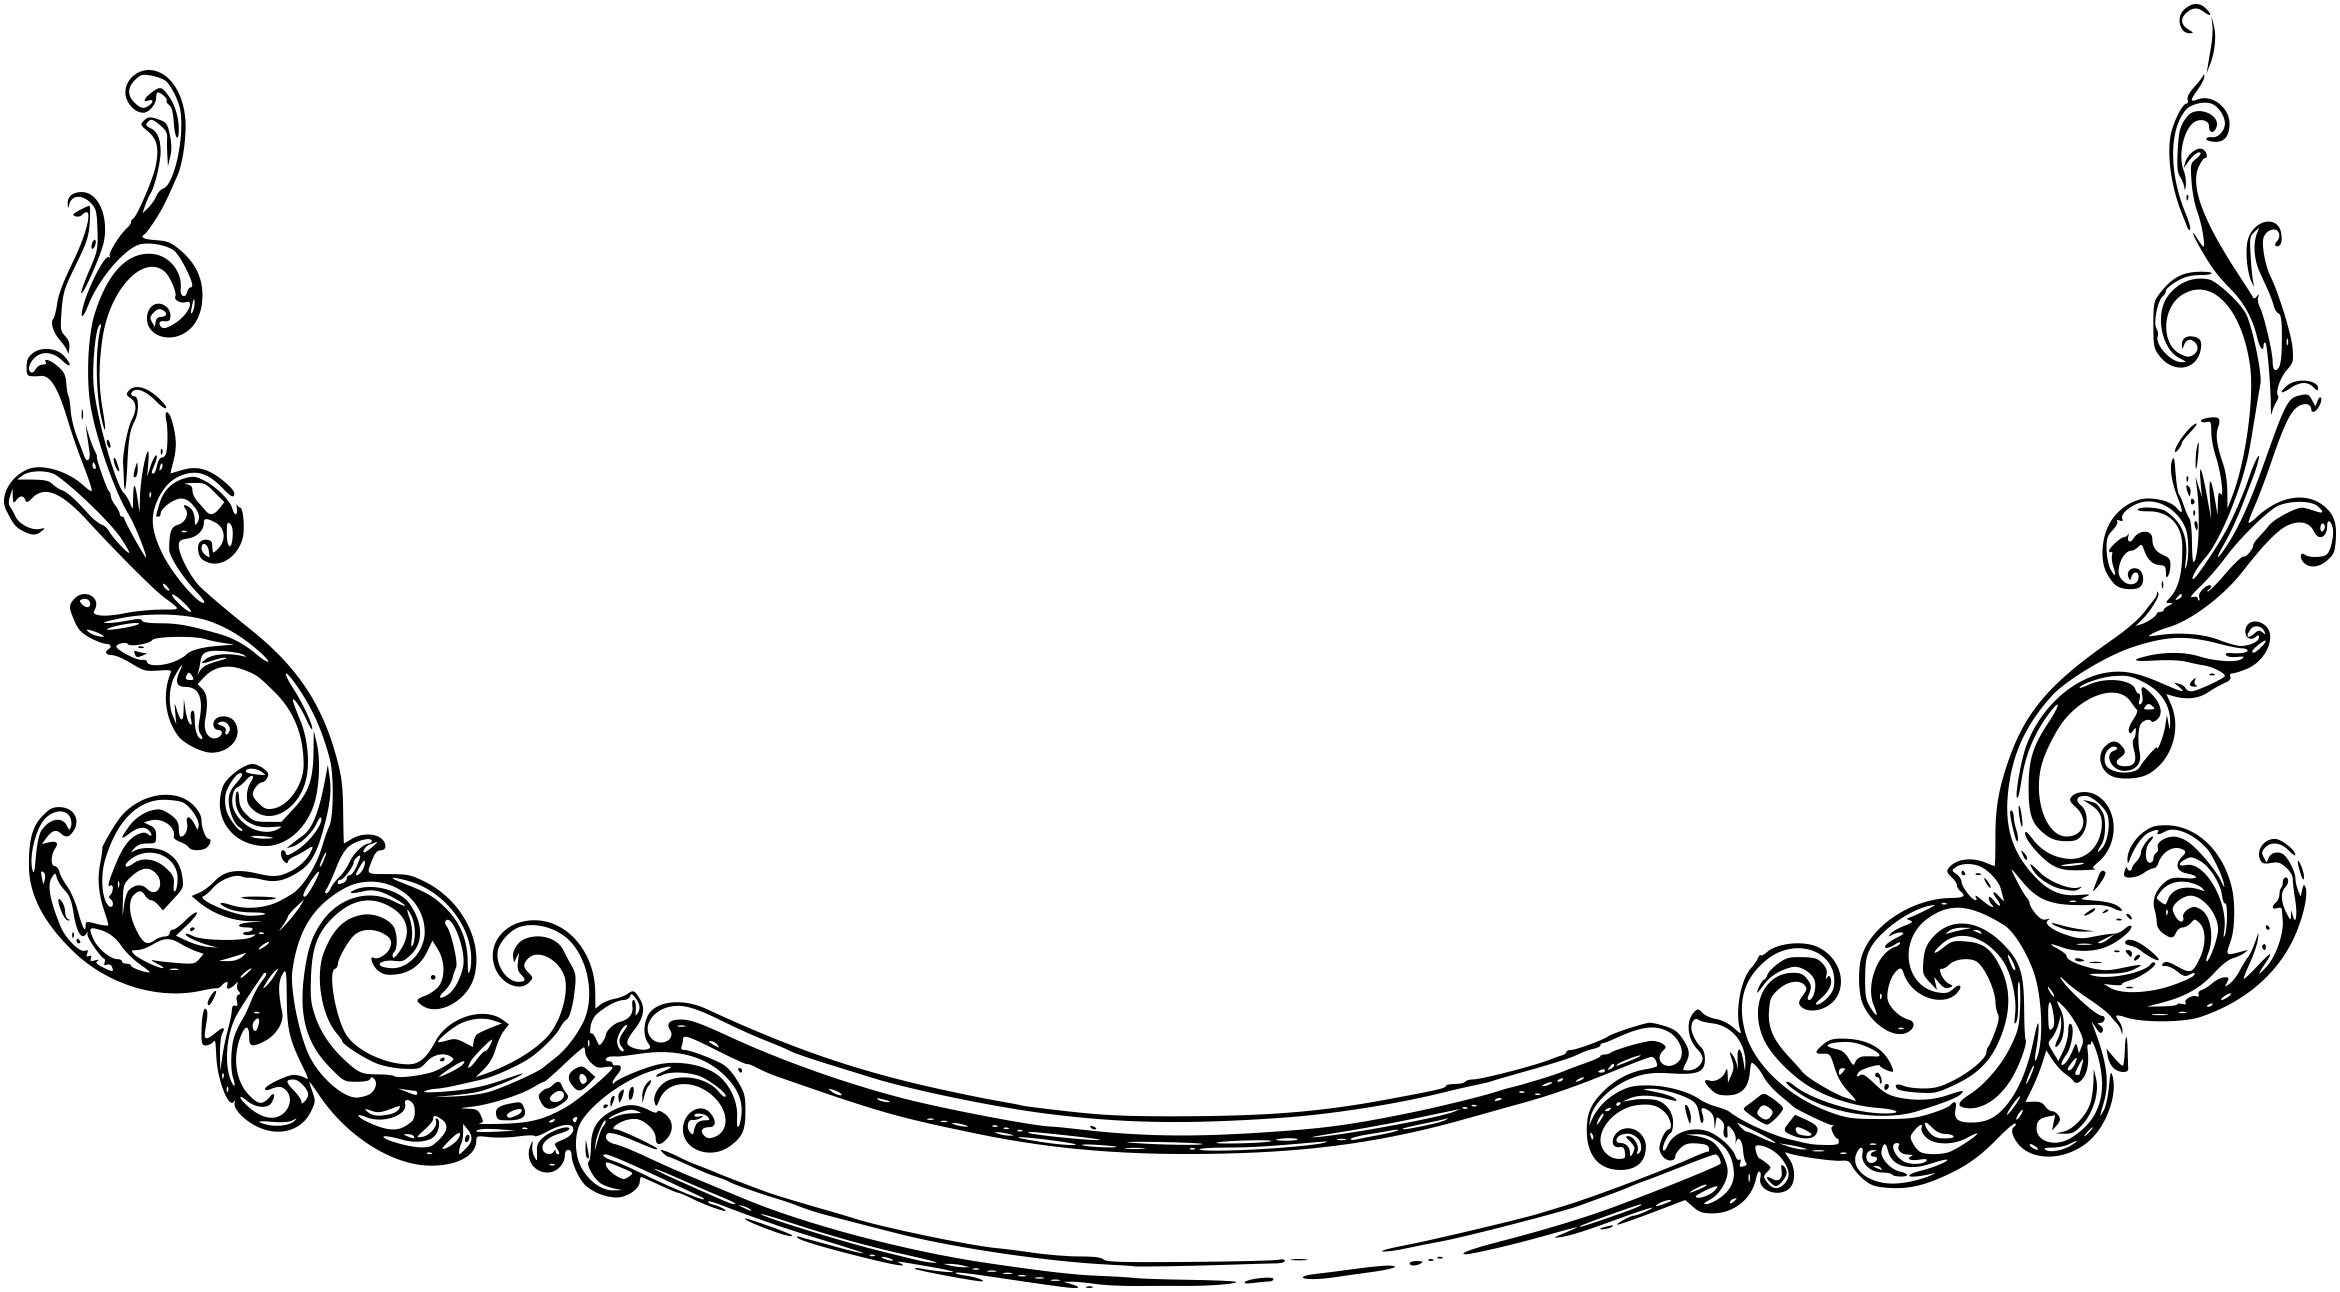 Wedding scroll clipart image royalty free stock Free clip art borders scroll clipart free and others 2 4 - ClipartBarn image royalty free stock